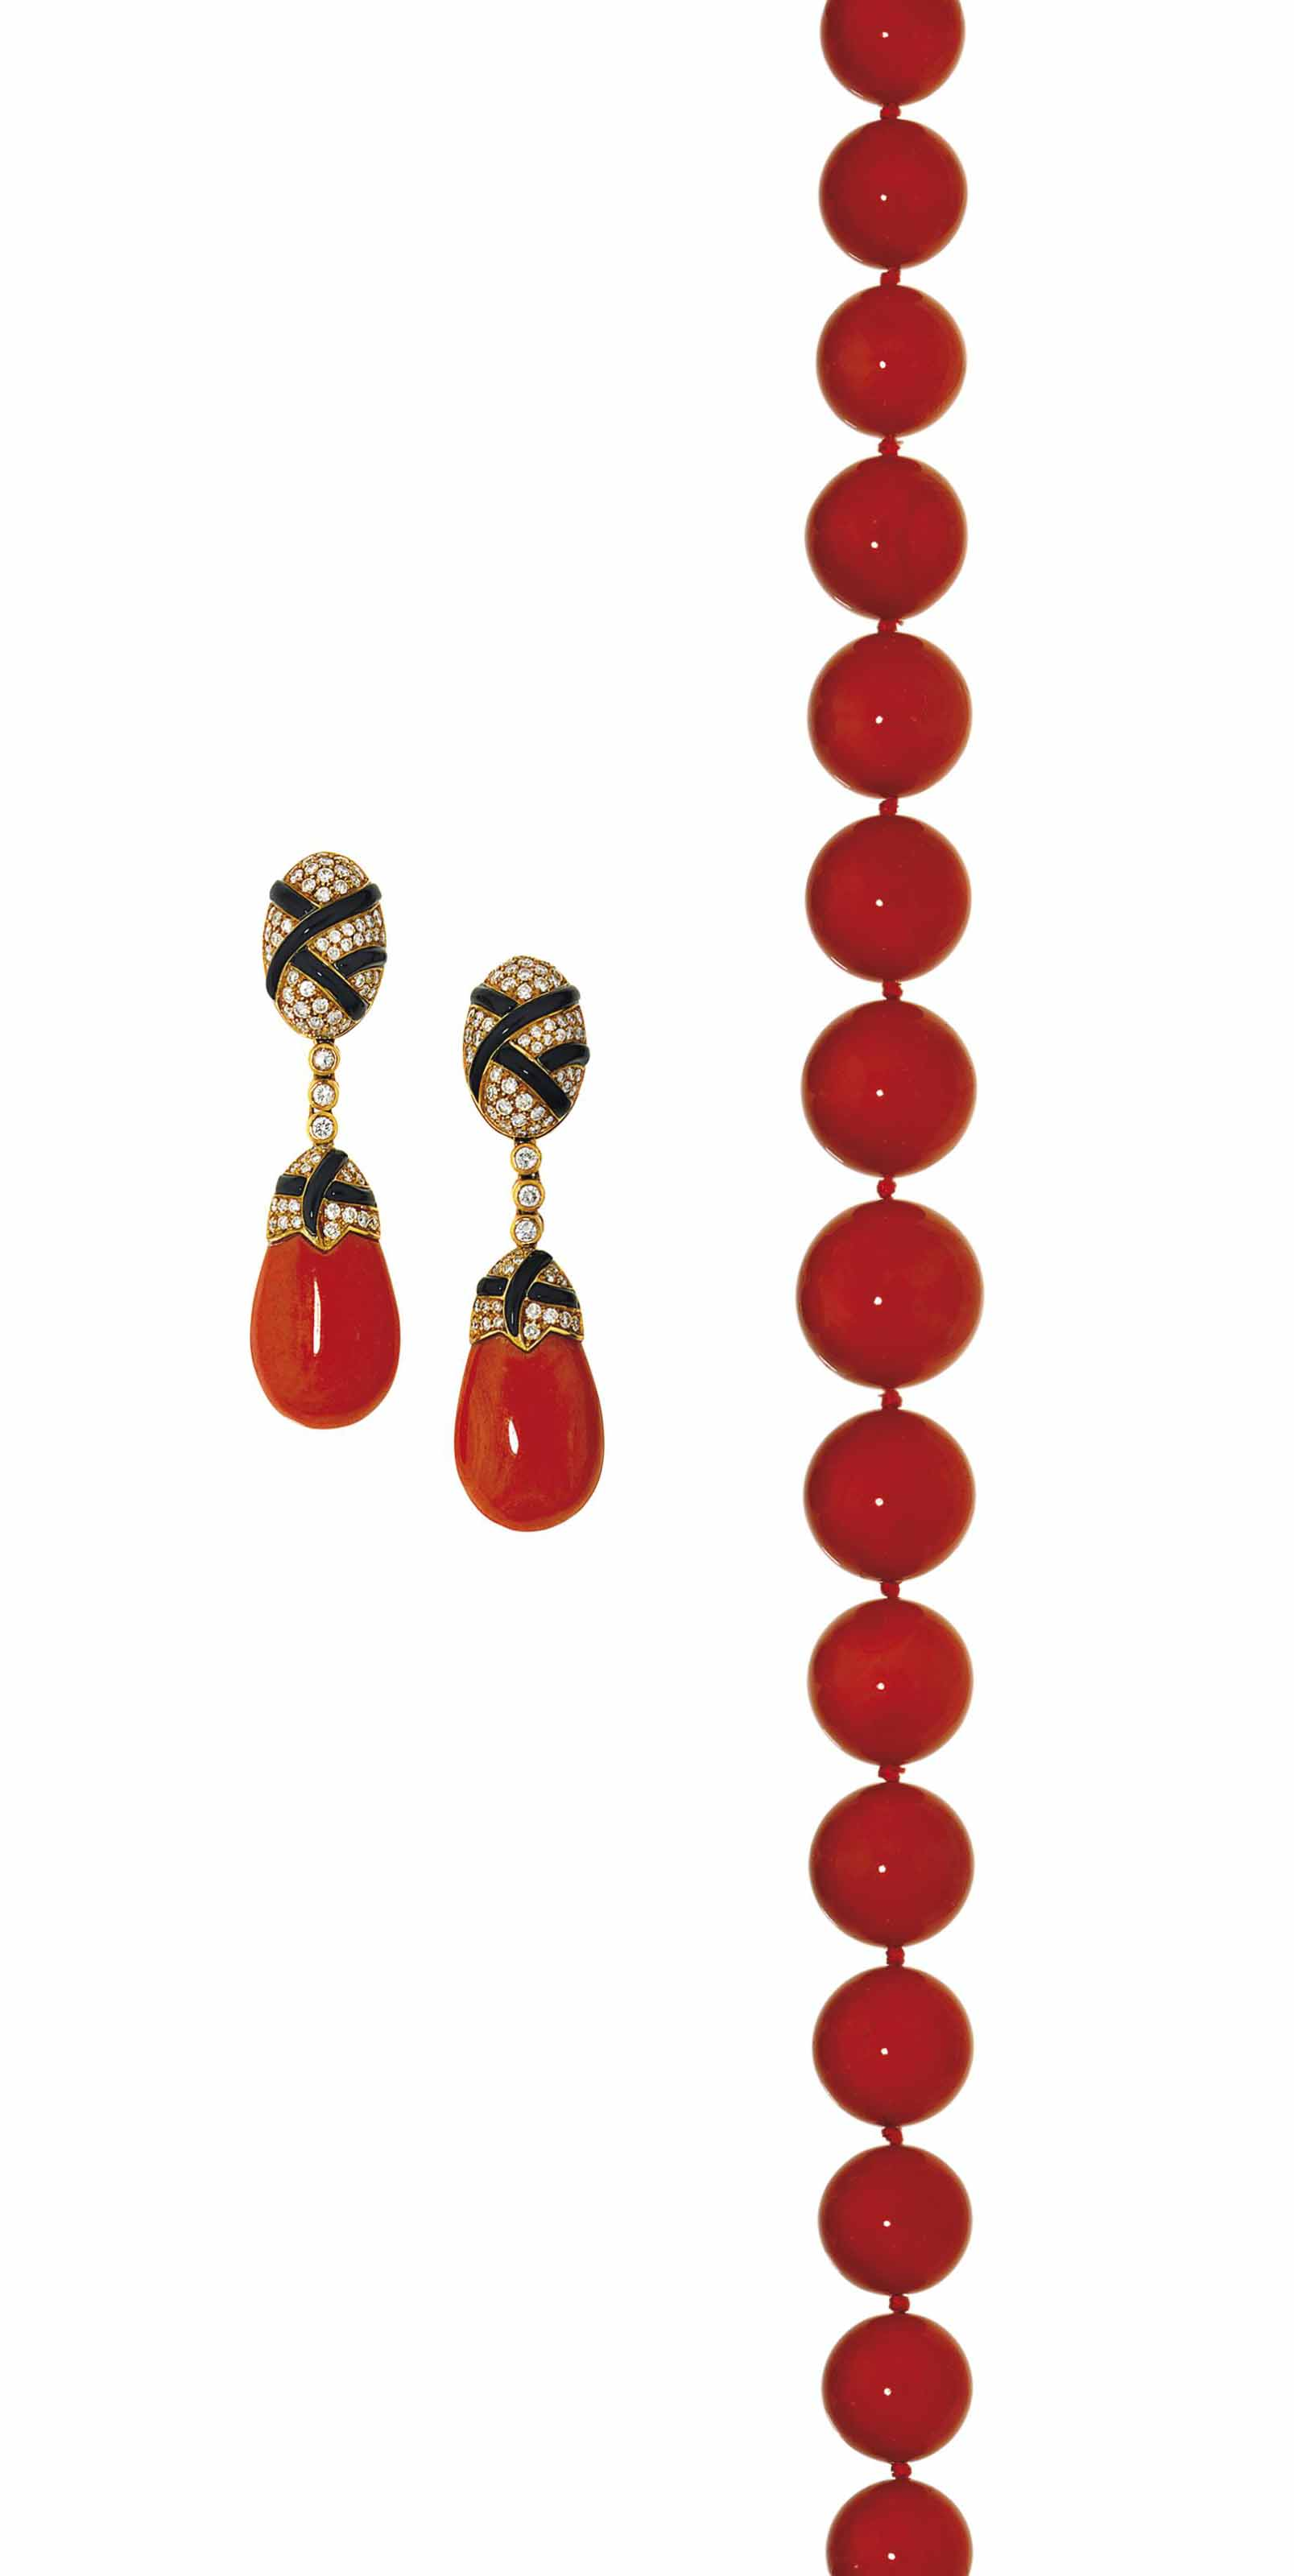 A coral bead necklace, by Trianon, and a pair of coral and diamond earrings